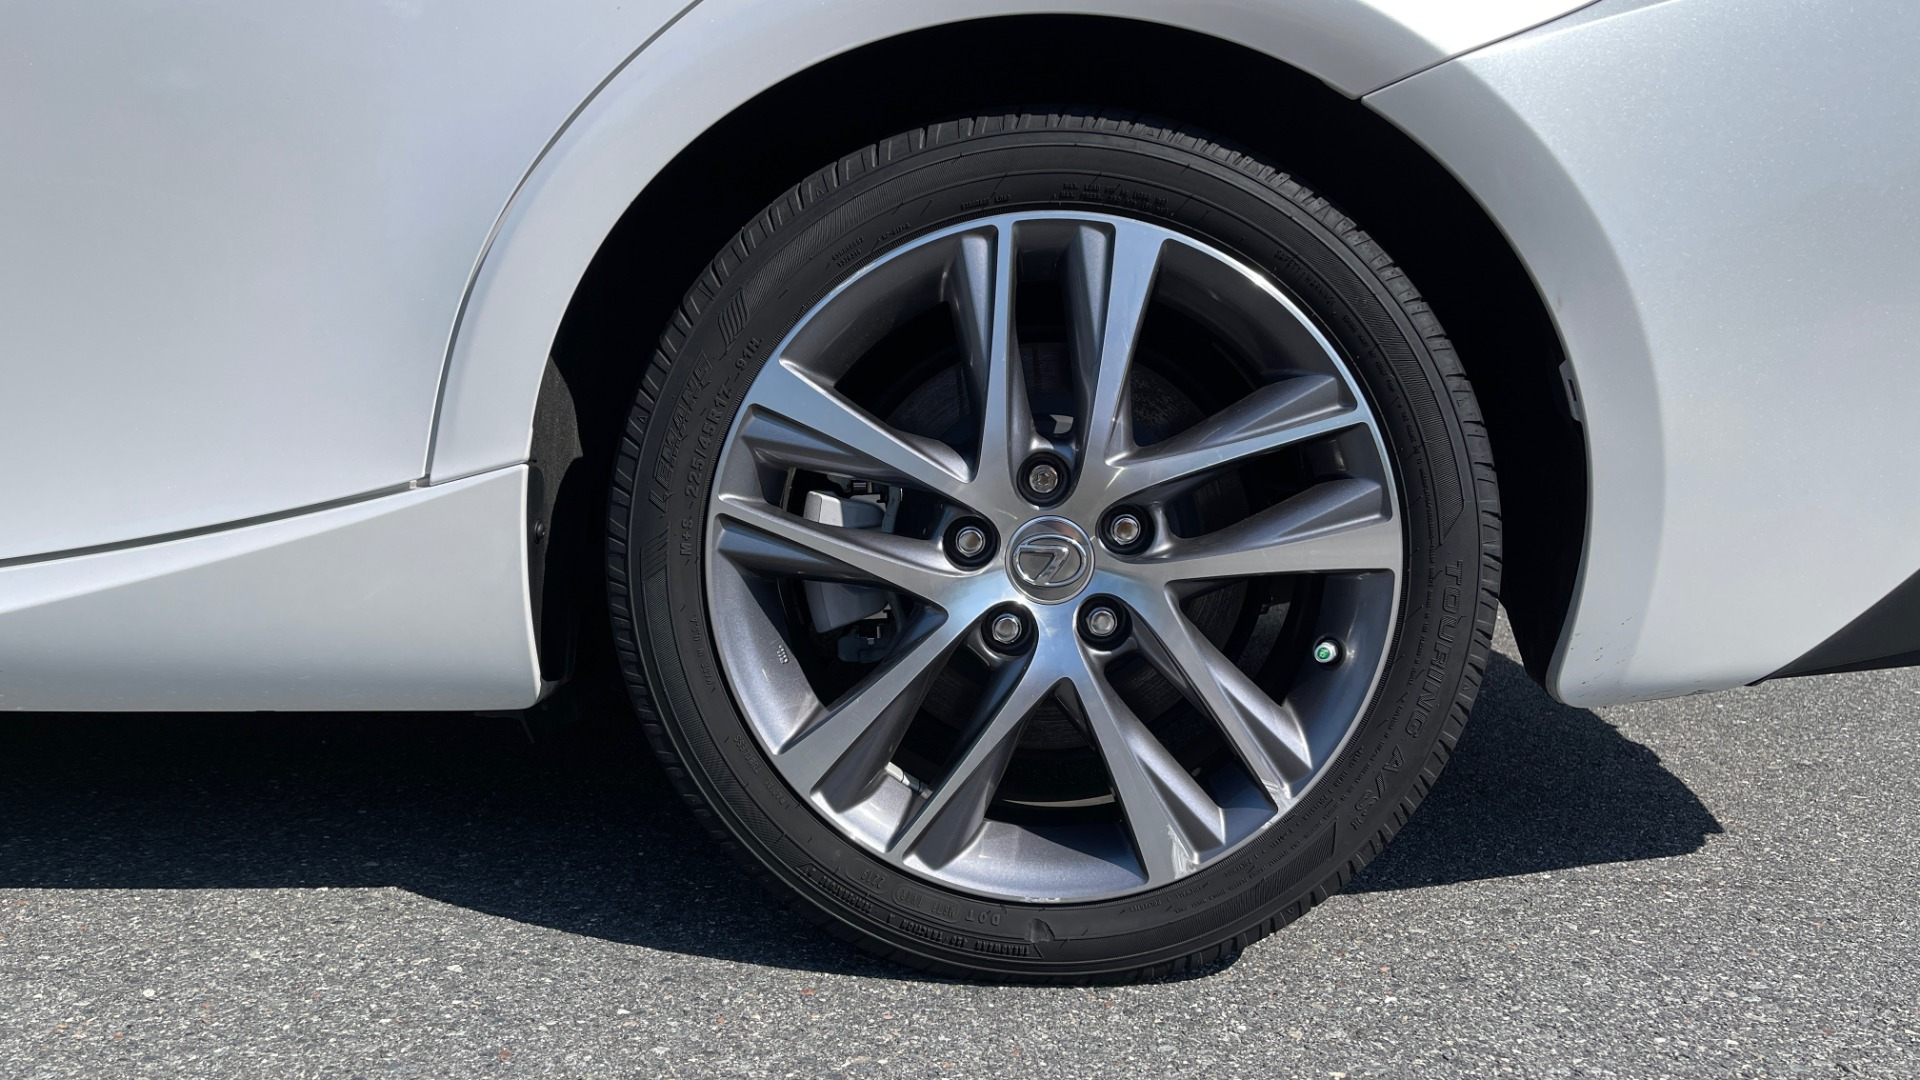 Used 2018 Lexus IS 300 / 2.0L TURBO / 8-SPD AUTO / SUNROOF / REARVIEW for sale $29,495 at Formula Imports in Charlotte NC 28227 67